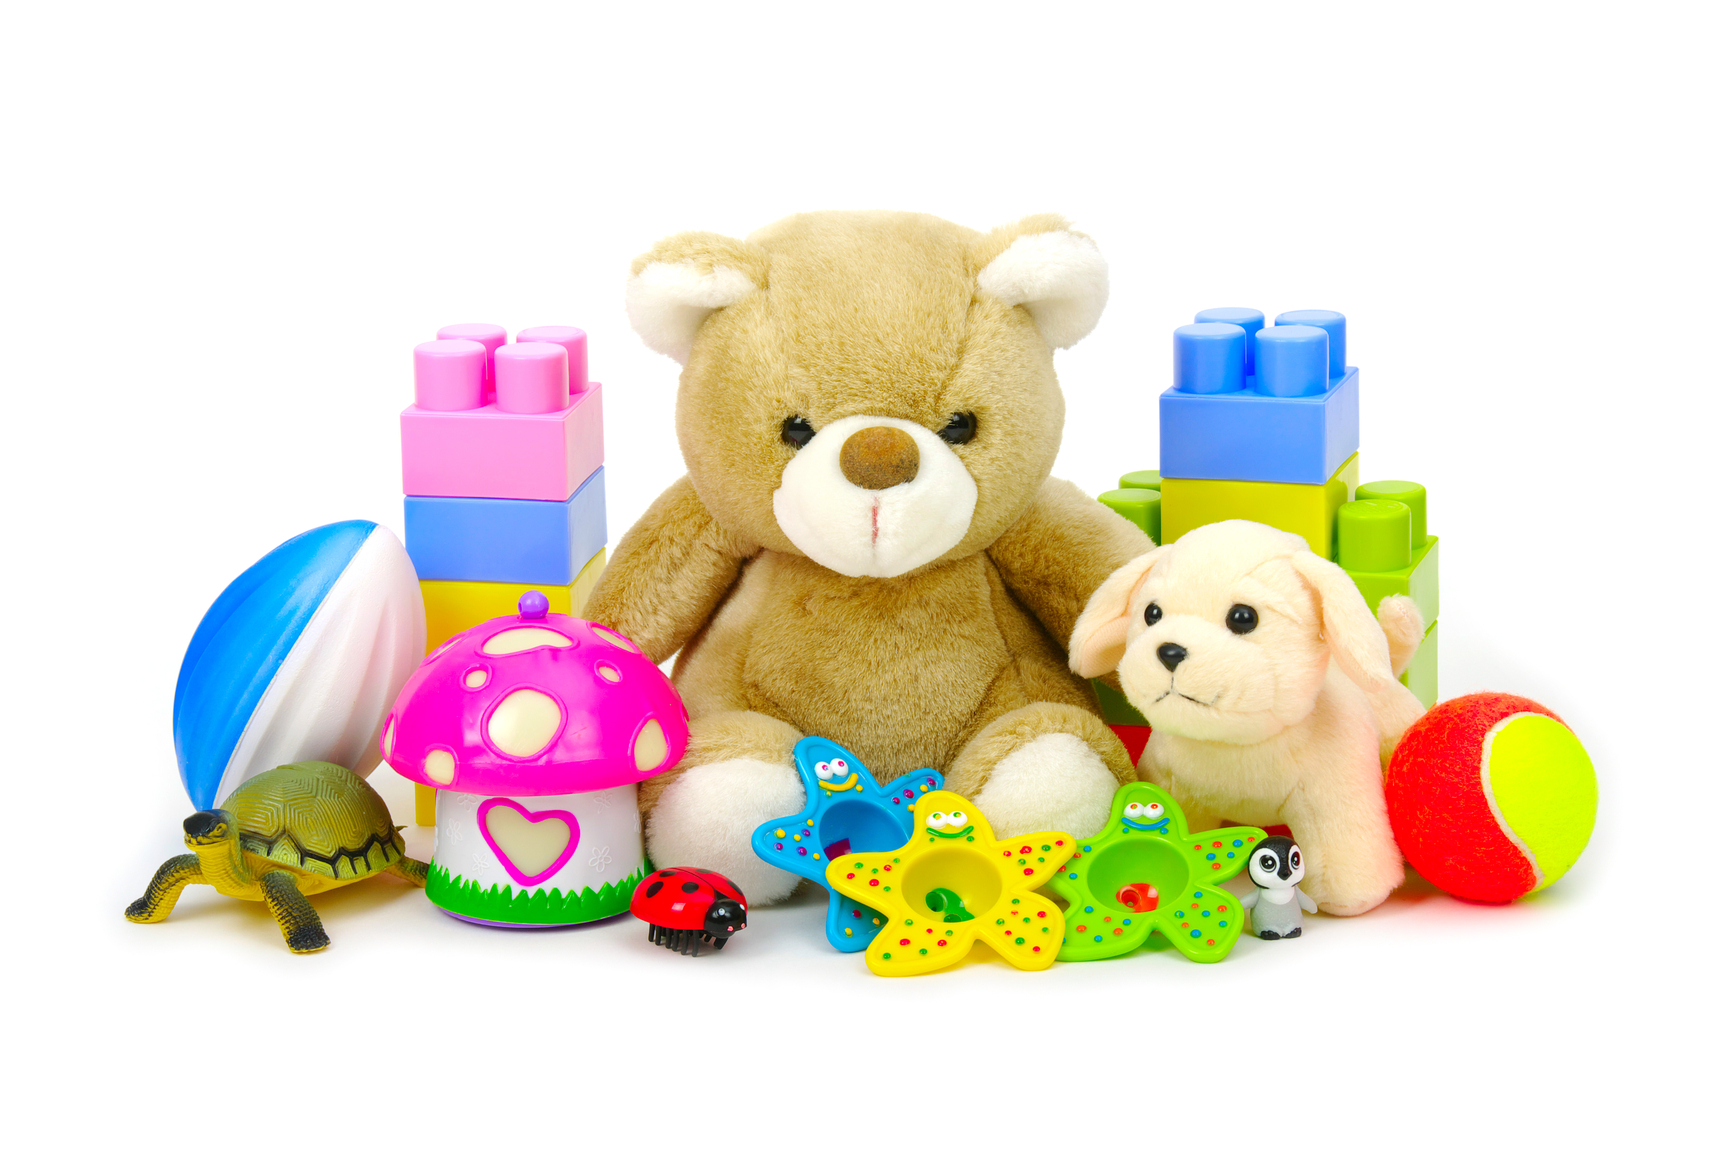 Fun Toys For Christmas : Top best selling toys on amazon for christmas